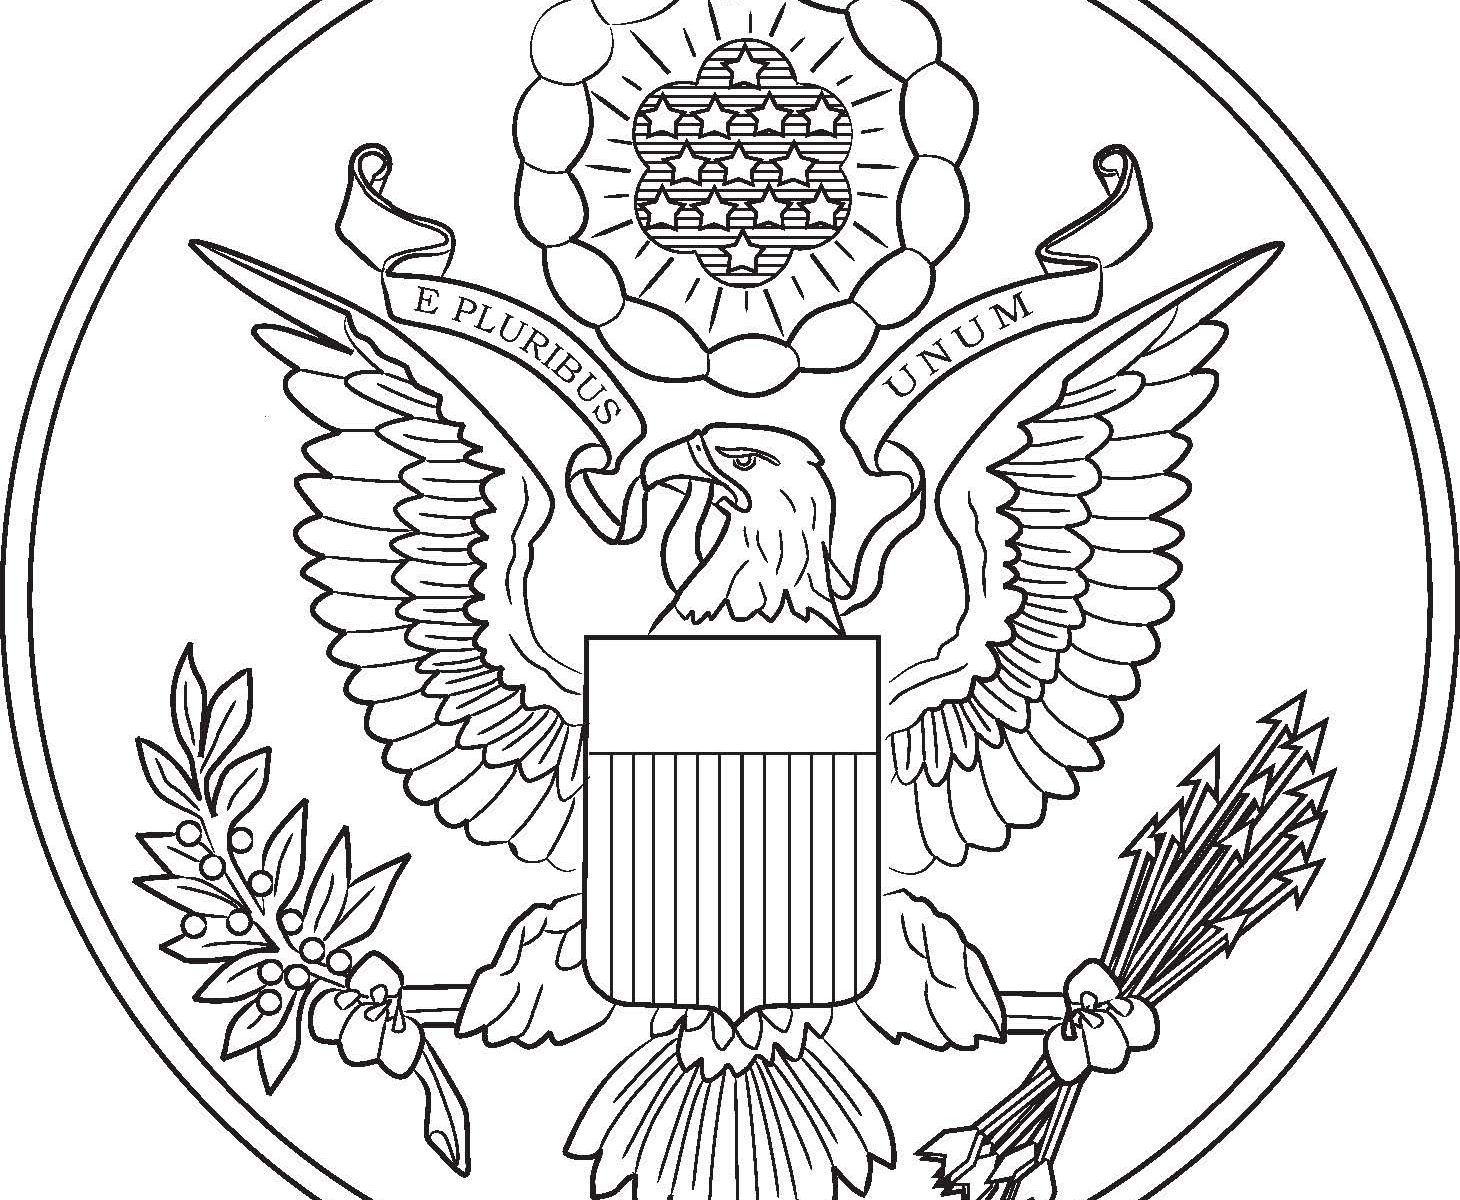 Patriotic Symbols Coloring Pages At Getcolorings